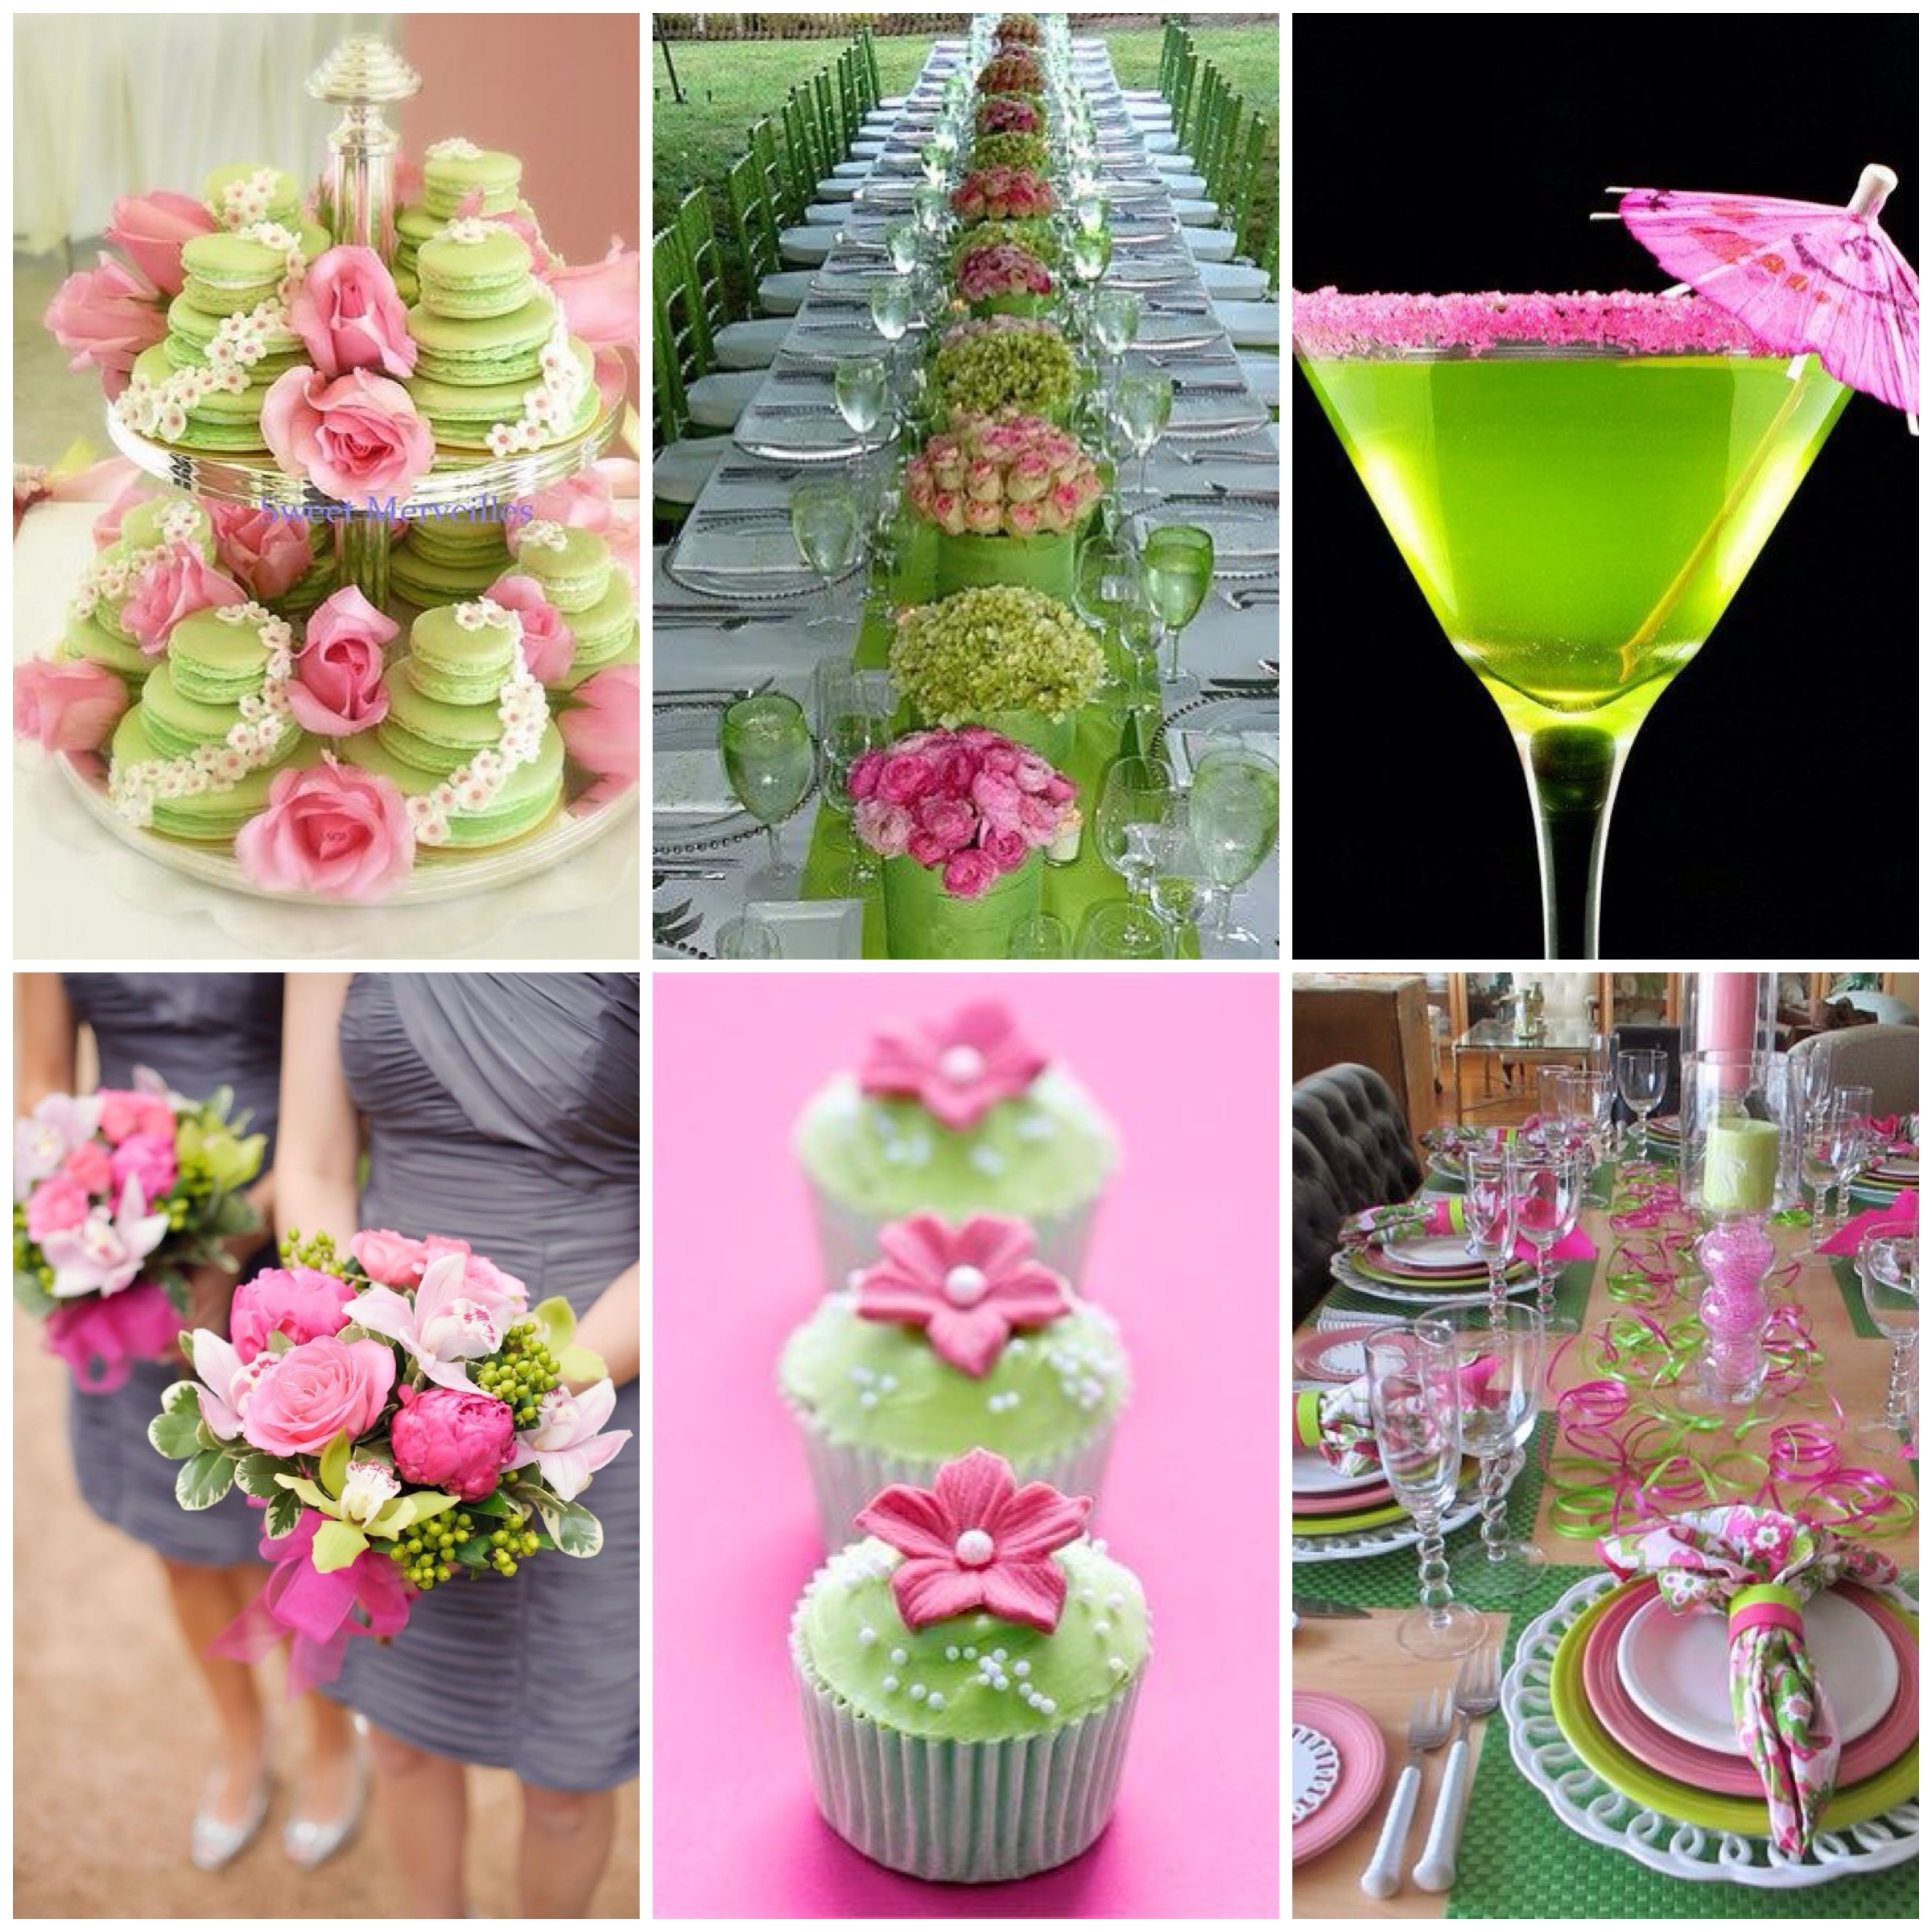 pinterest board, image credit - pinterest, pink and lime wedding moodboard, pink and lime wedding pinterest board